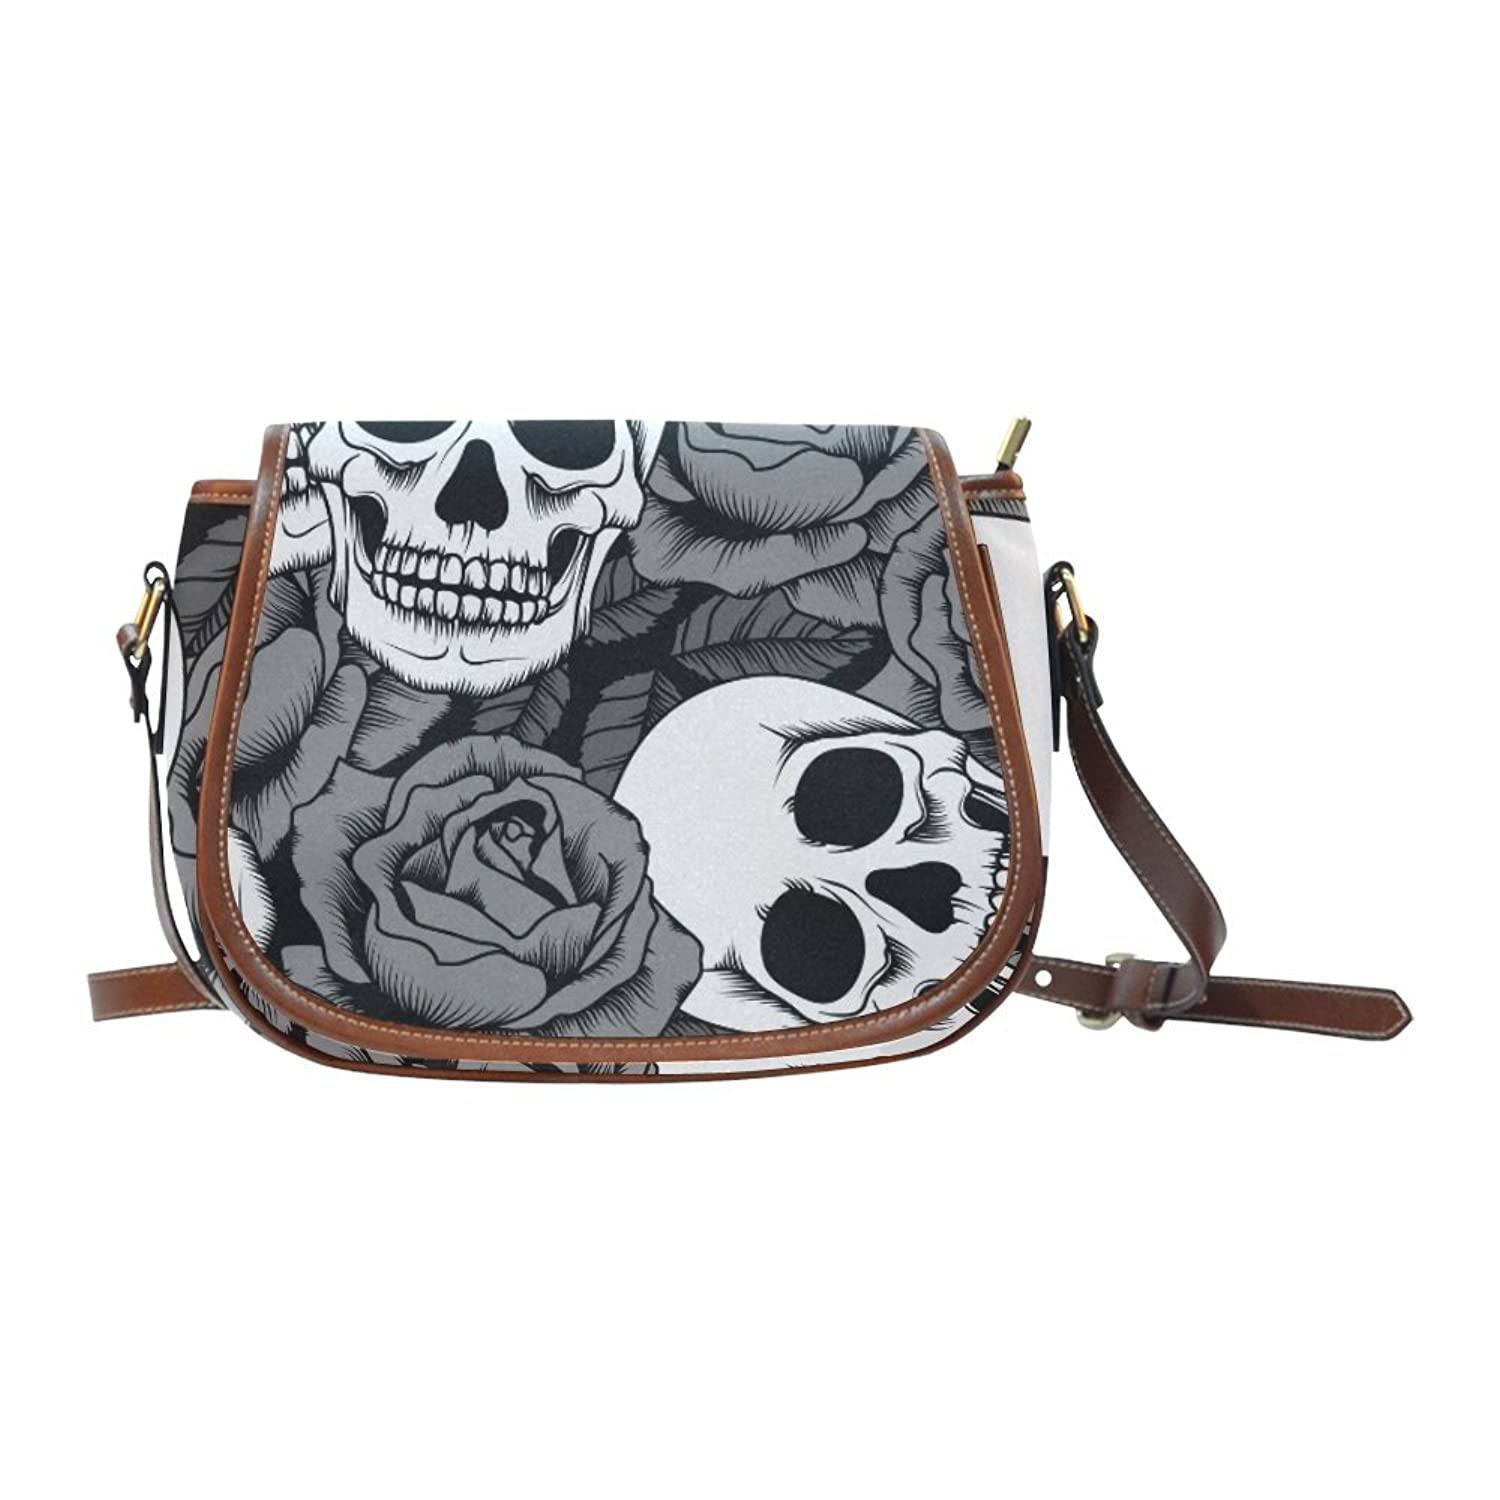 Sugar Skull Dia De Los Muertos Women's Waterproof Cross-body Shoulder Travel Saddle Bag Purse